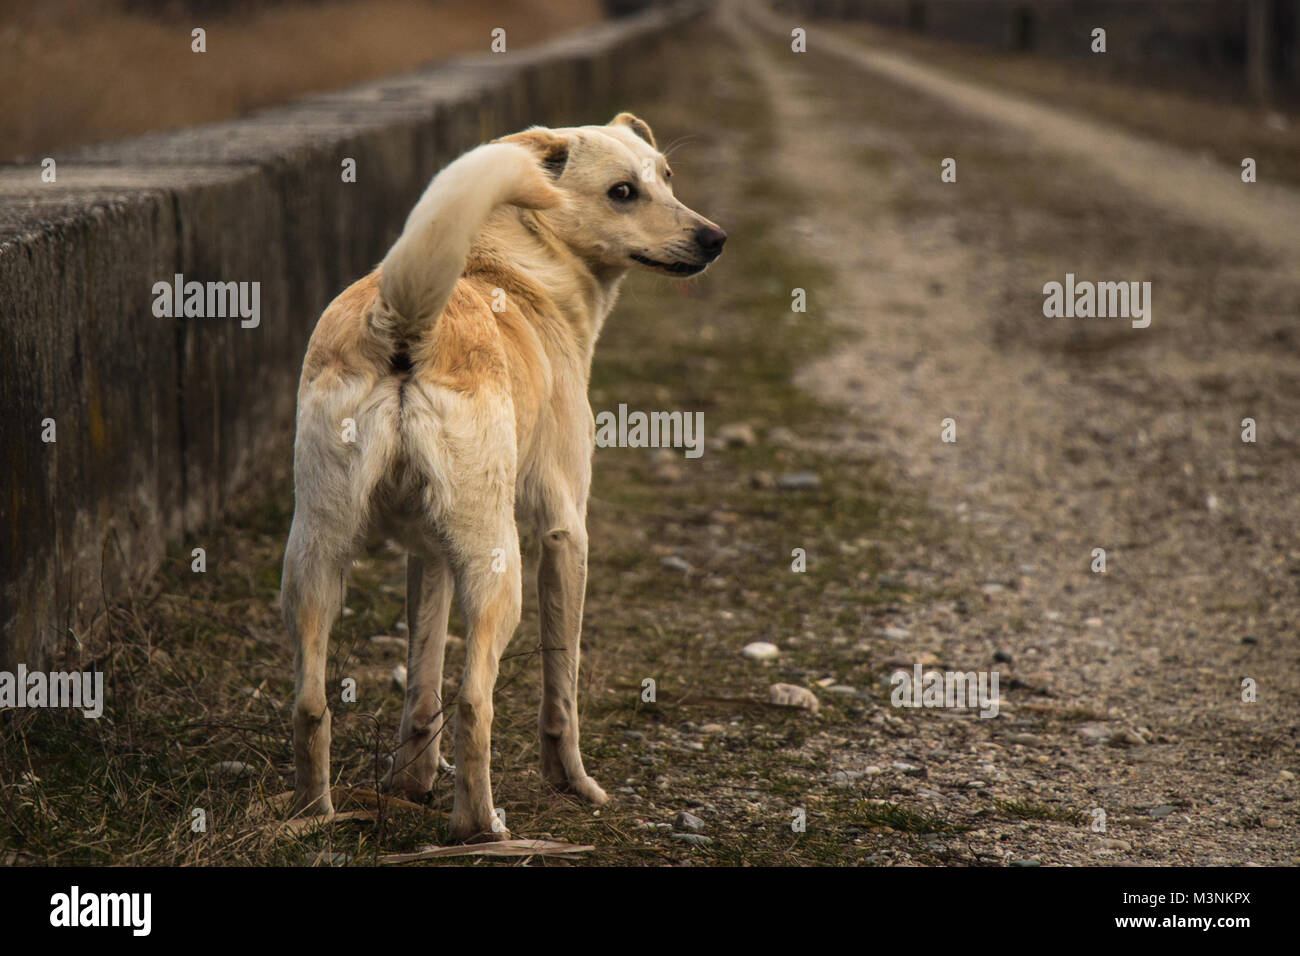 A young yellow dog back - Stock Image